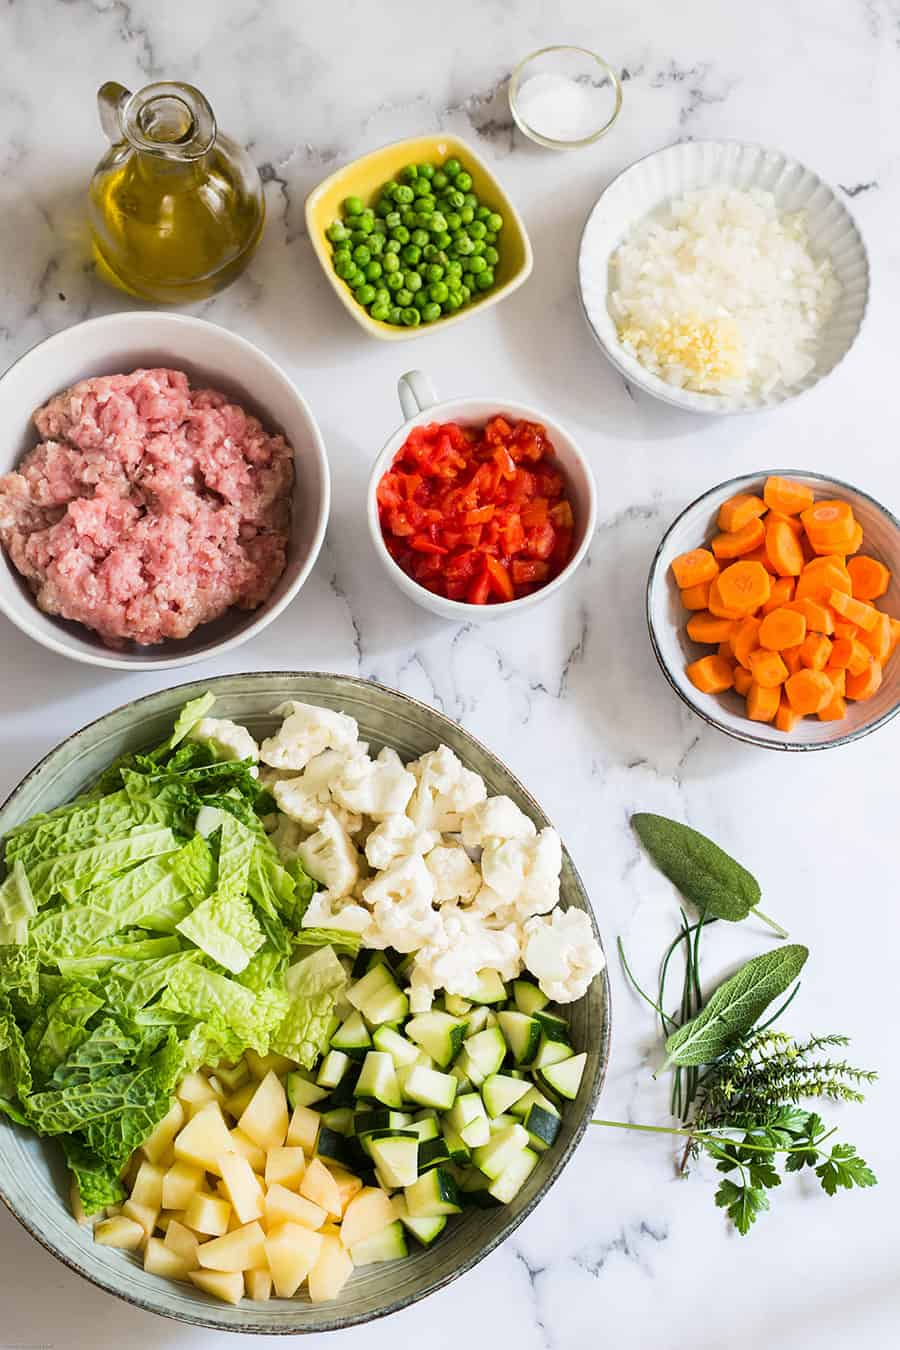 Ingredients for minestrone soup with sausage displayed on a marble countertop.